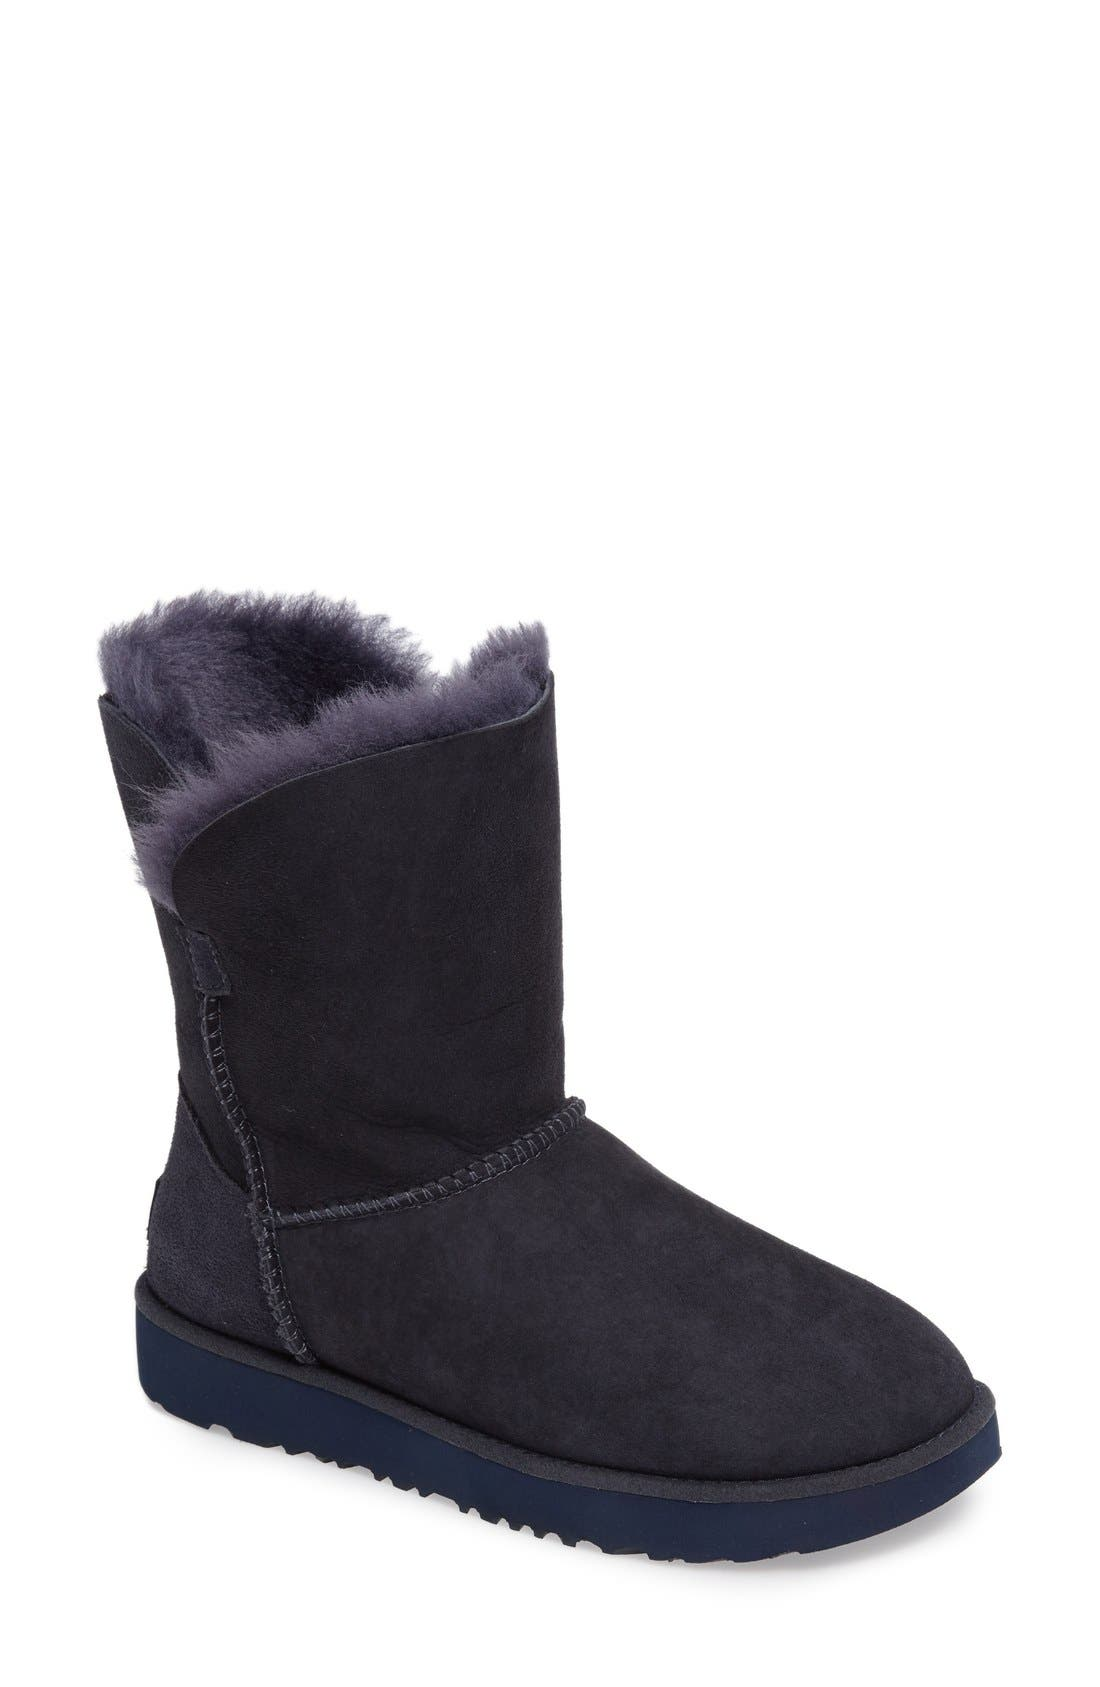 Get the best deals on nordstrom ugg shoes and save up to 70% off at Poshmark now! Whatever you're shopping for, we've got it.